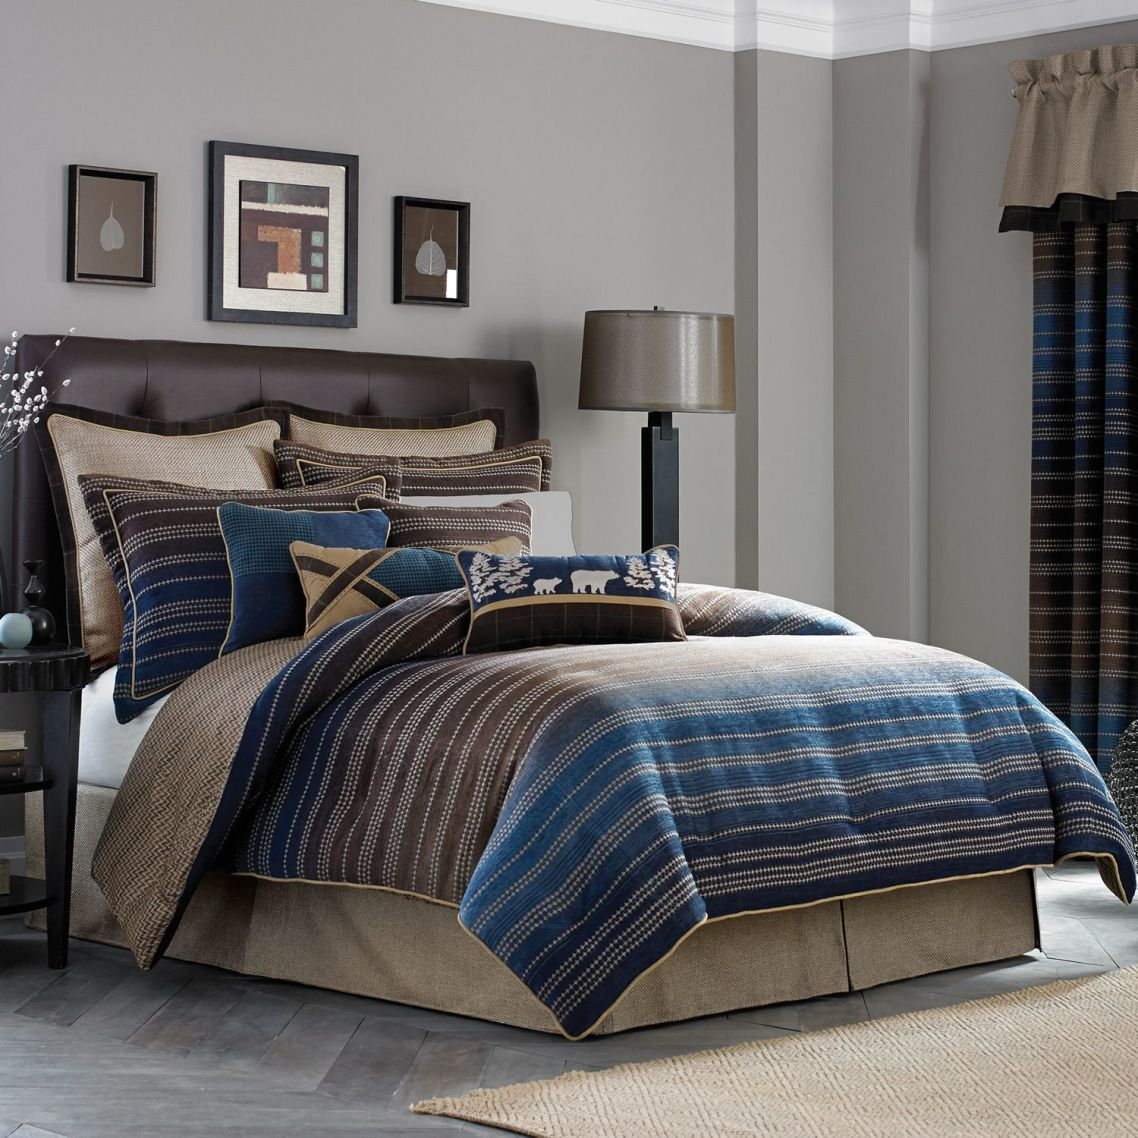 cool comforter sets  homesfeed - cool comforter sets for guys with simple stripped design